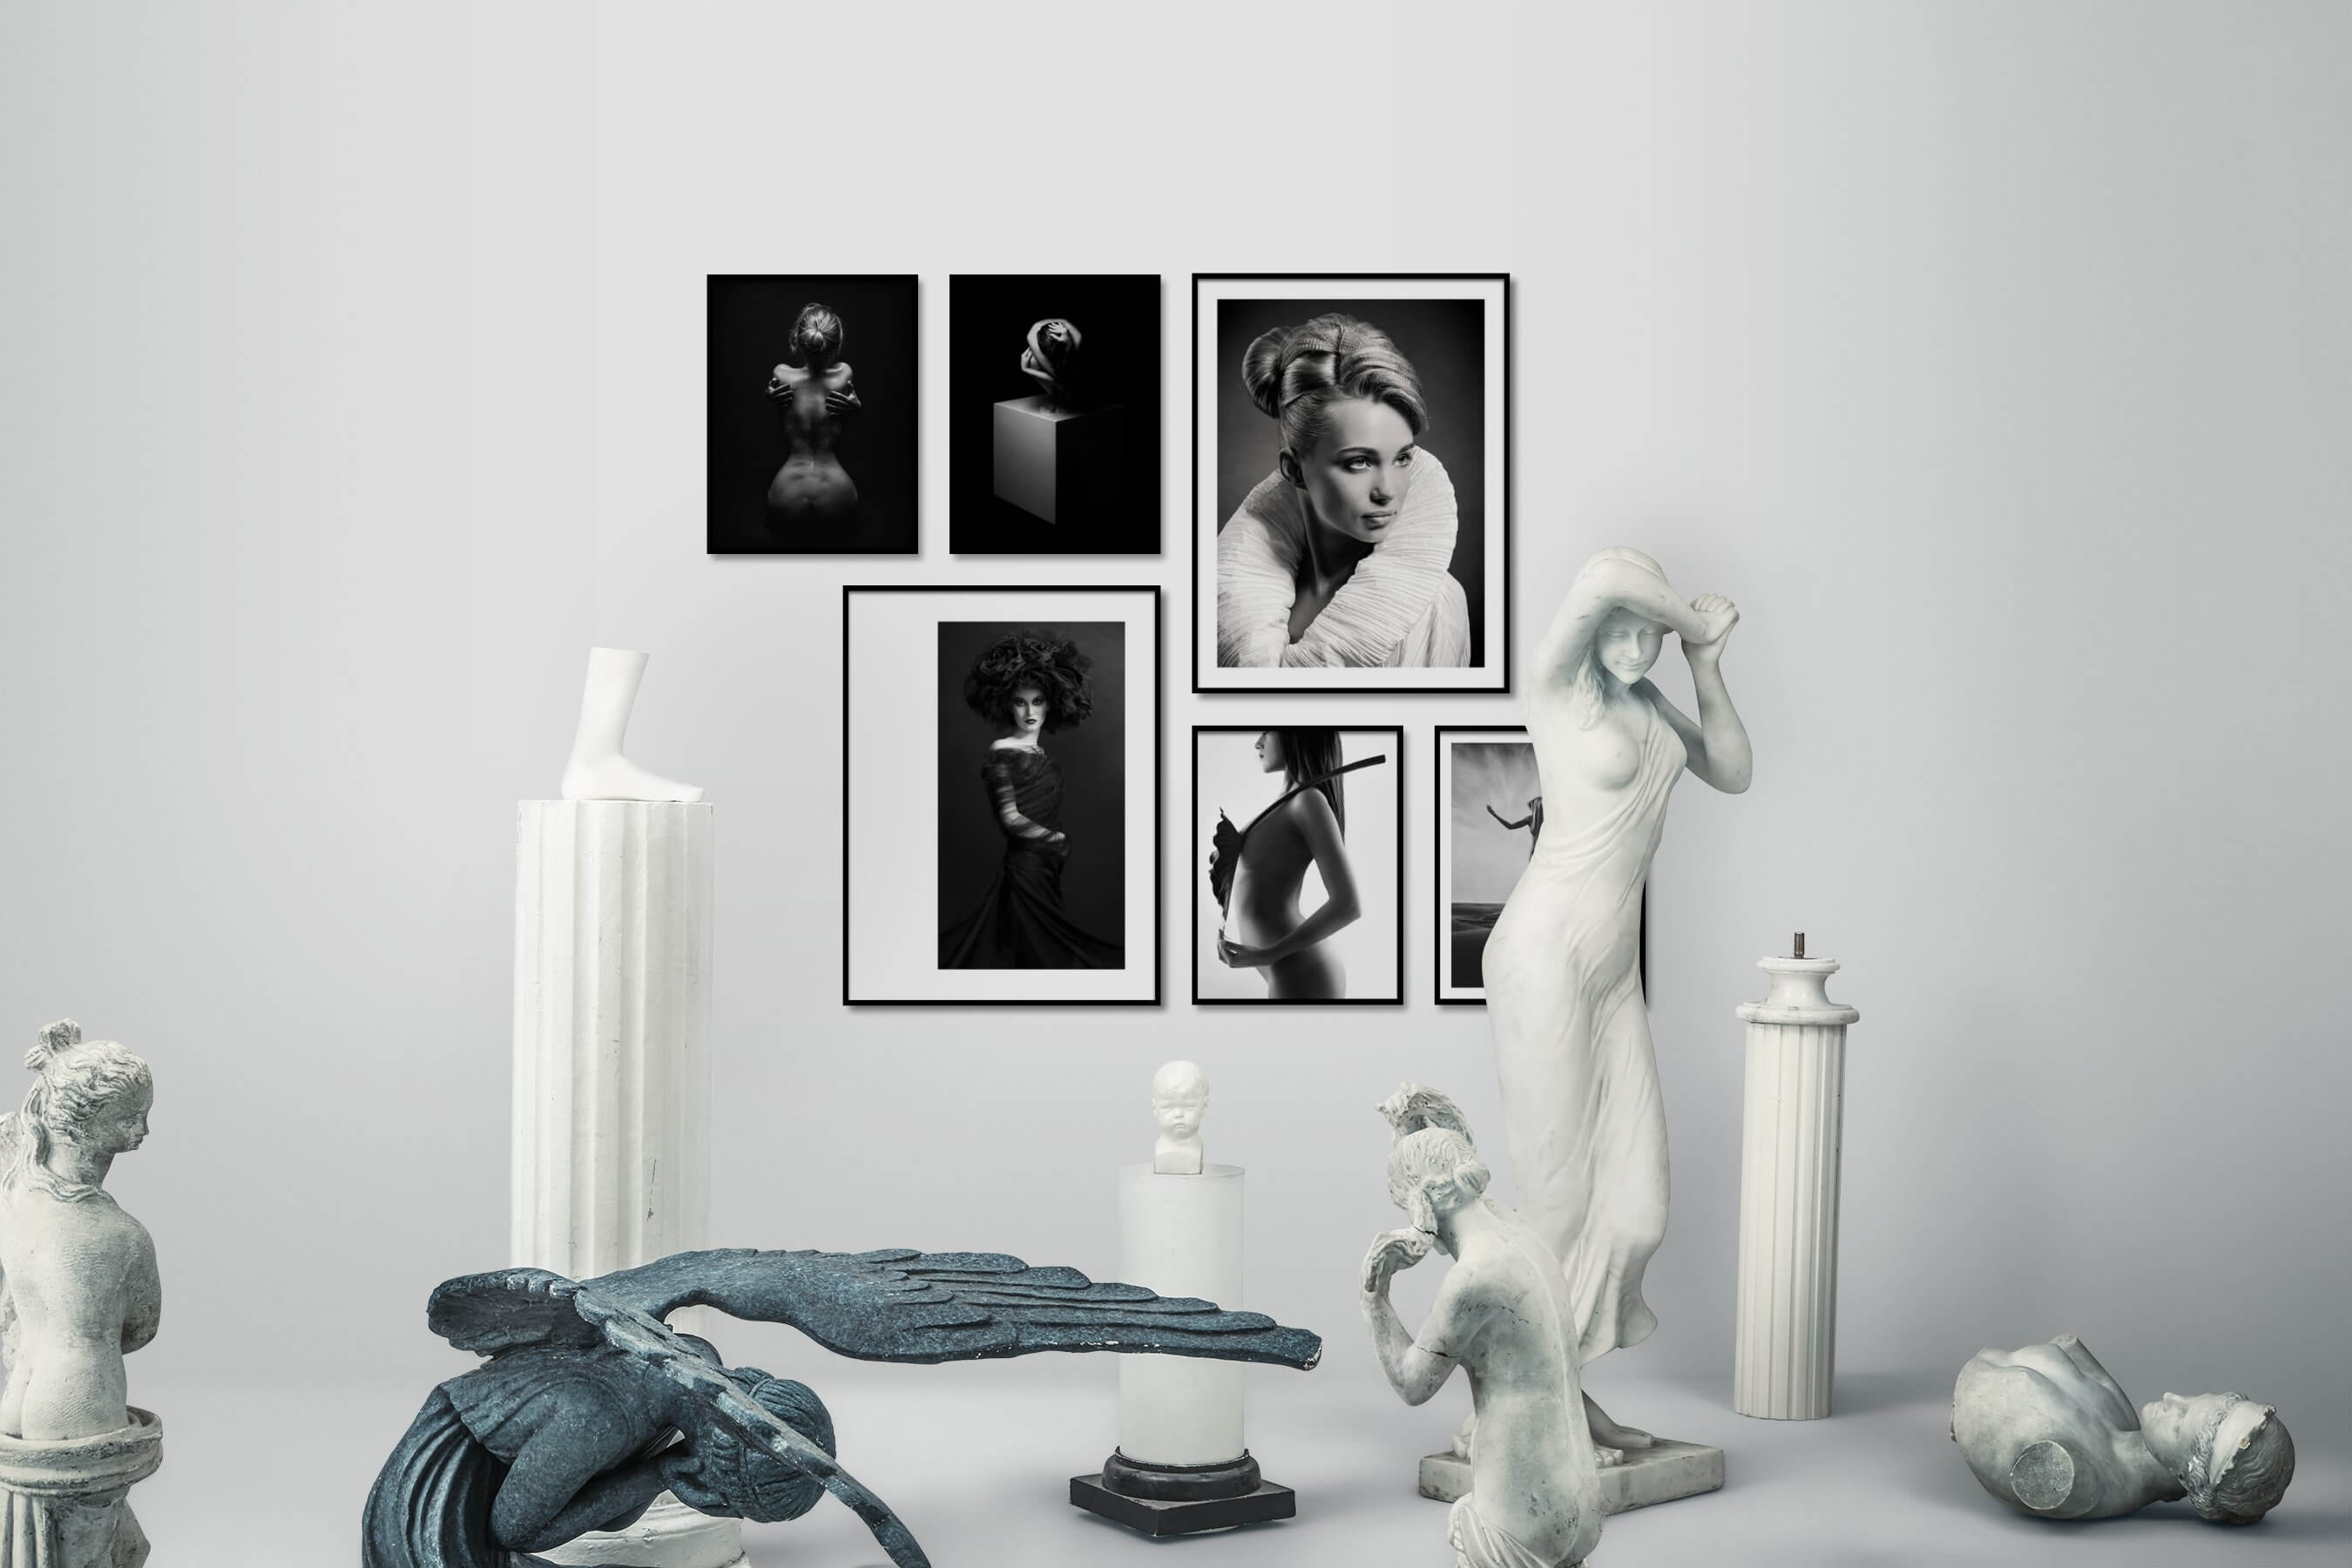 Gallery wall idea with six framed pictures arranged on a wall depicting Fashion & Beauty, Black & White, Dark Tones, For the Minimalist, Artsy, Vintage, and Bright Tones